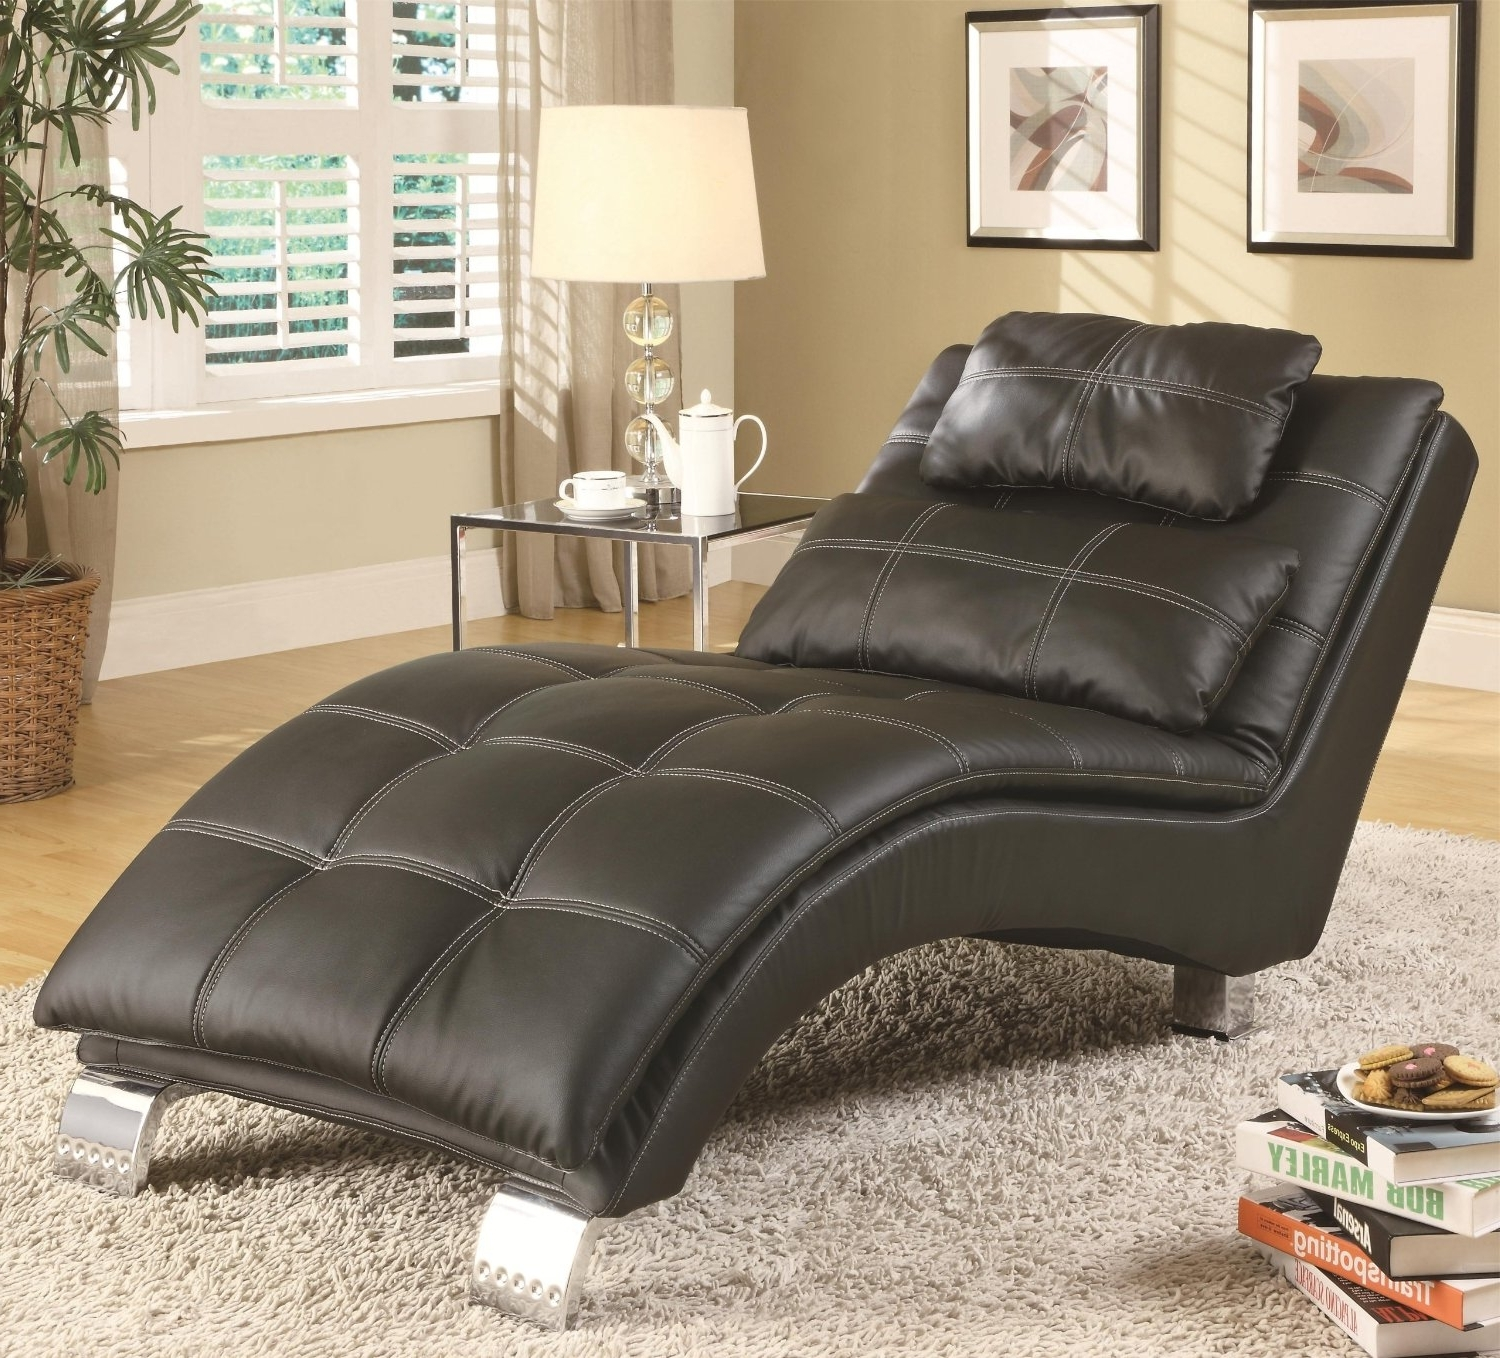 2017 Microfiber Chaise Lounge Chairs Pertaining To Furniture: Cheap Chaise Chairs (View 1 of 15)